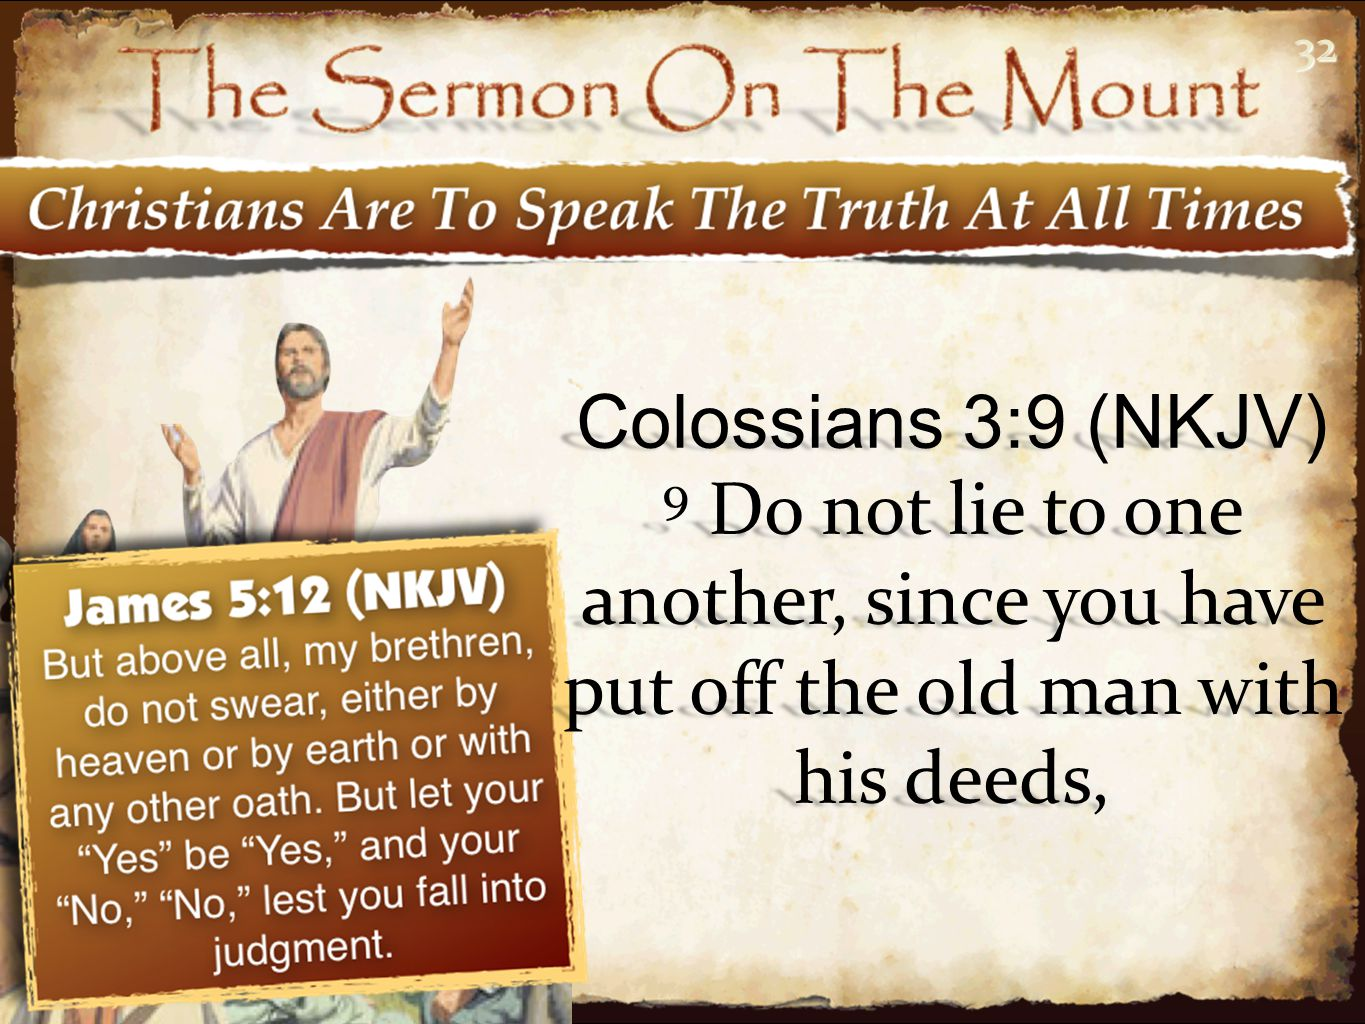 32 Colossians 3:9 (NKJV) 9 Do not lie to one another, since you have put off the old man with his deeds,